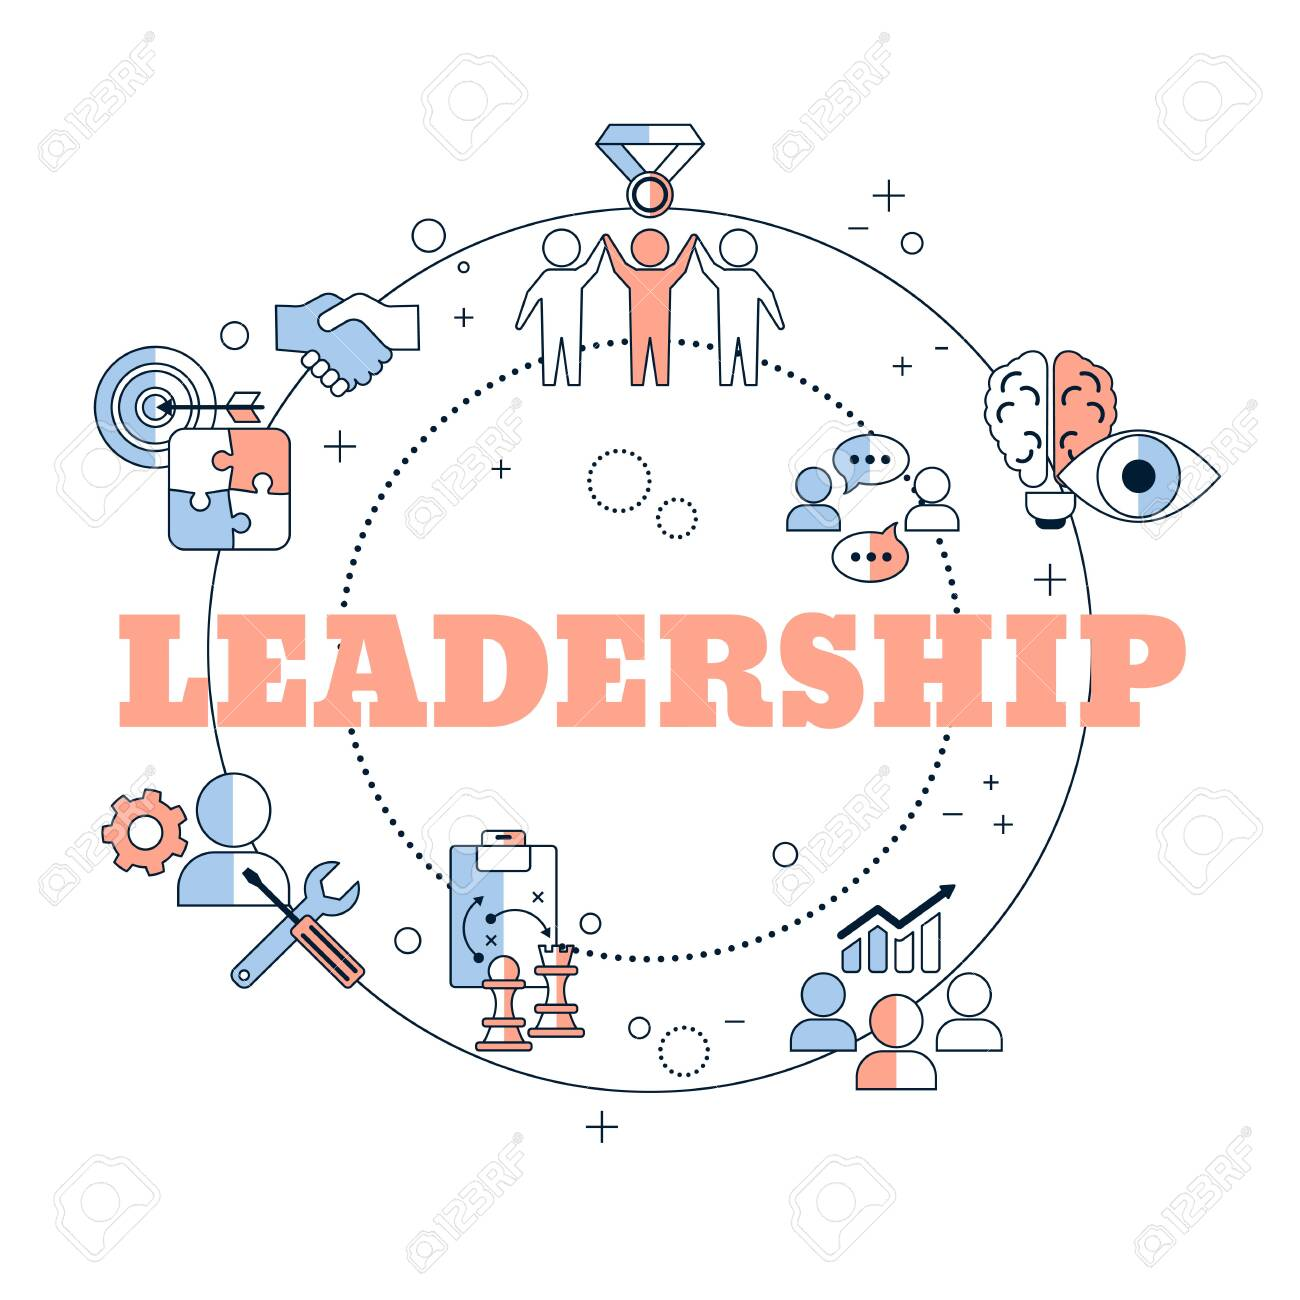 Leadership Banner Concept With Icons Vector Illustration Royalty Free Cliparts Vectors And Stock Illustration Image 133827956